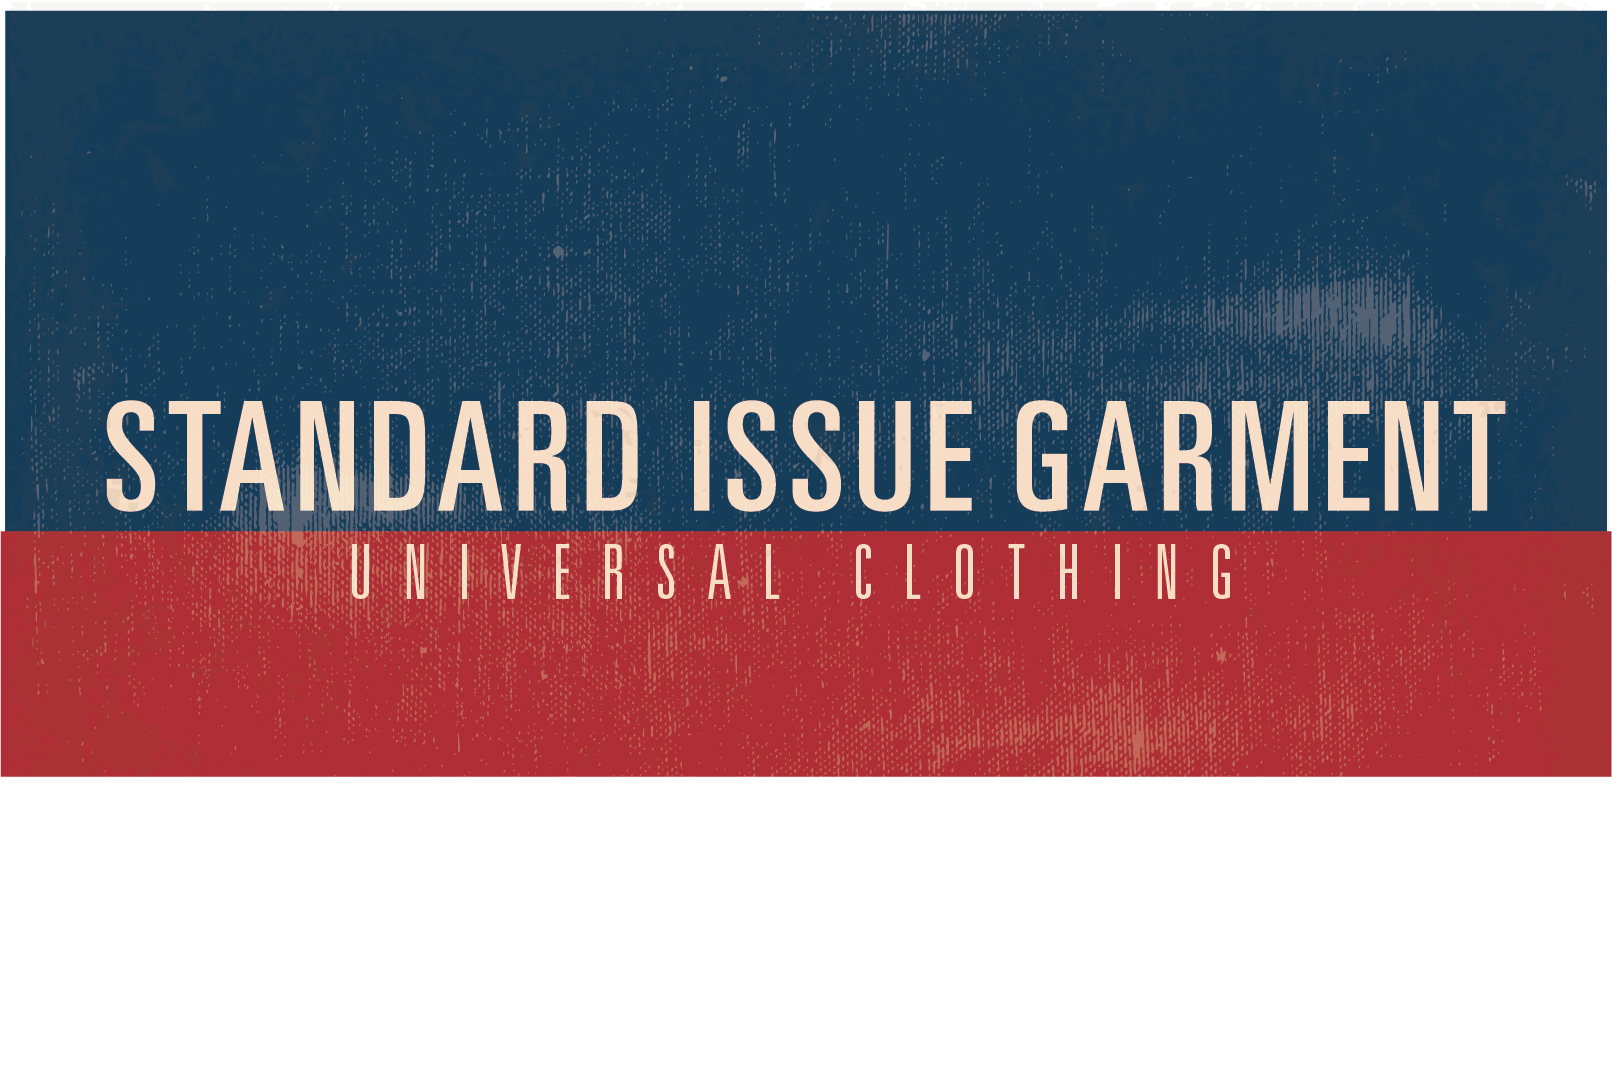 Standard Issue Garment Store